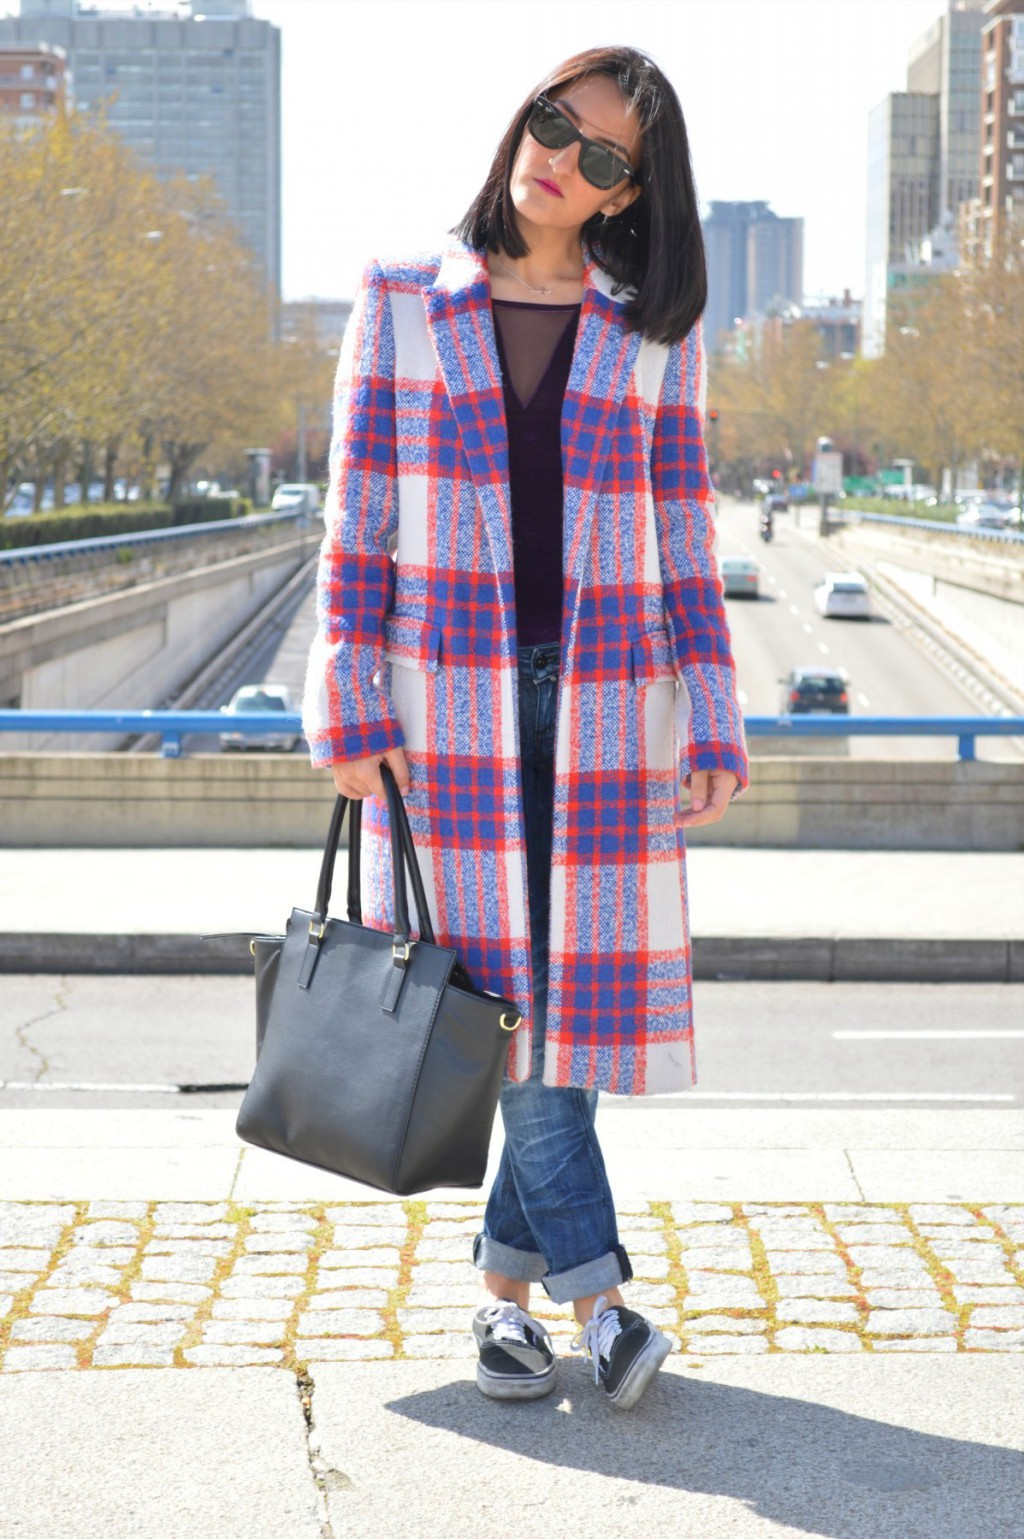 Abrigo / coat: Zara Top: Stradivarius (old) Jeans: Mango Sneakers: Vans Bolso / bag: H&M (new) Colgante / necklace: Bershka